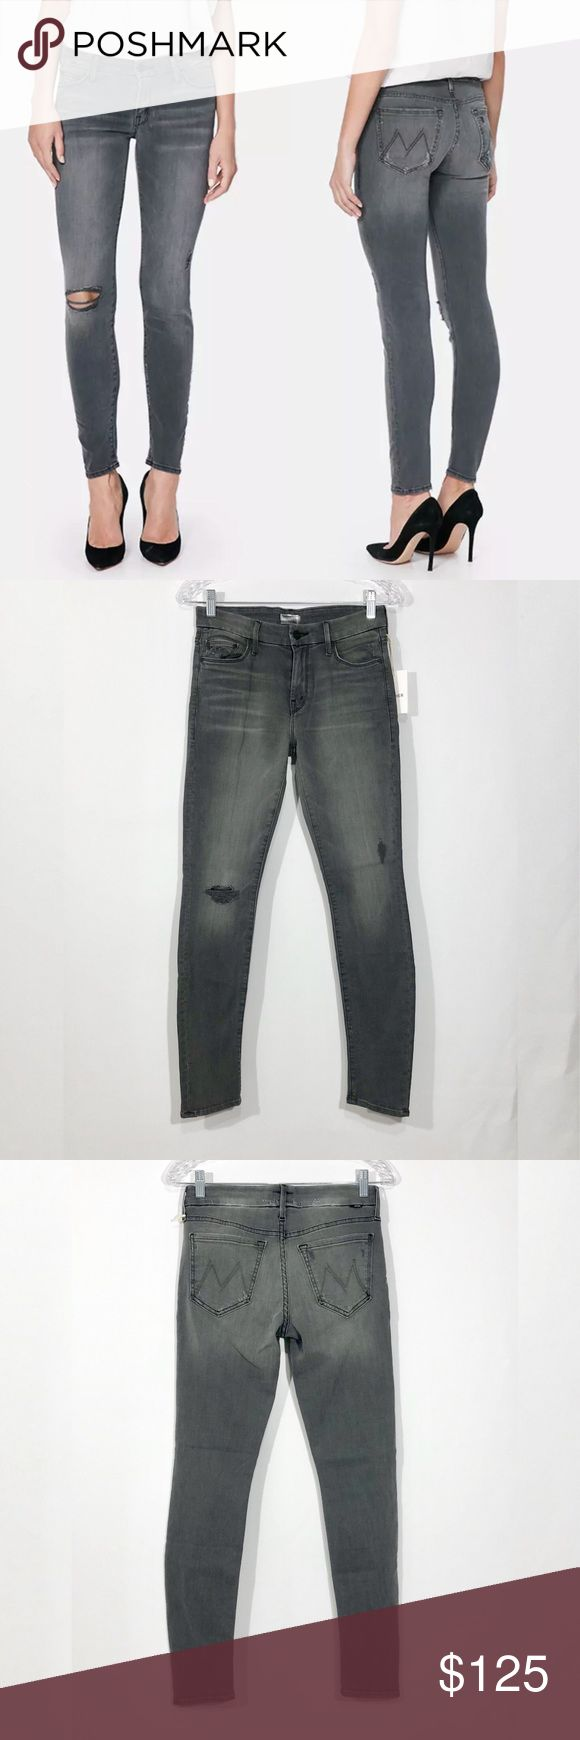 """MOTHER THE LOOKER SKINNY JEANS/LAST CHANCE SALOON Mother The Looker Jeans in Last Chance Saloon Size: 26 Condition: New with tags. MRSP: $208  Details: The looker is Mother's Classic mid rise, skinny Jeans in a form fitting silhouette guaranteed to turn head. Last Chance Saloon is a faded medium gray wash with a smooth hem and thrashed knee 98% Cotton, 2% elastane Measurements: Waist side seam to side seam:14"""" Hips side to side:16"""" Rise: 9"""" Inseam:29"""" leg opening: 10"""" MOTHER Jeans Ankle…"""